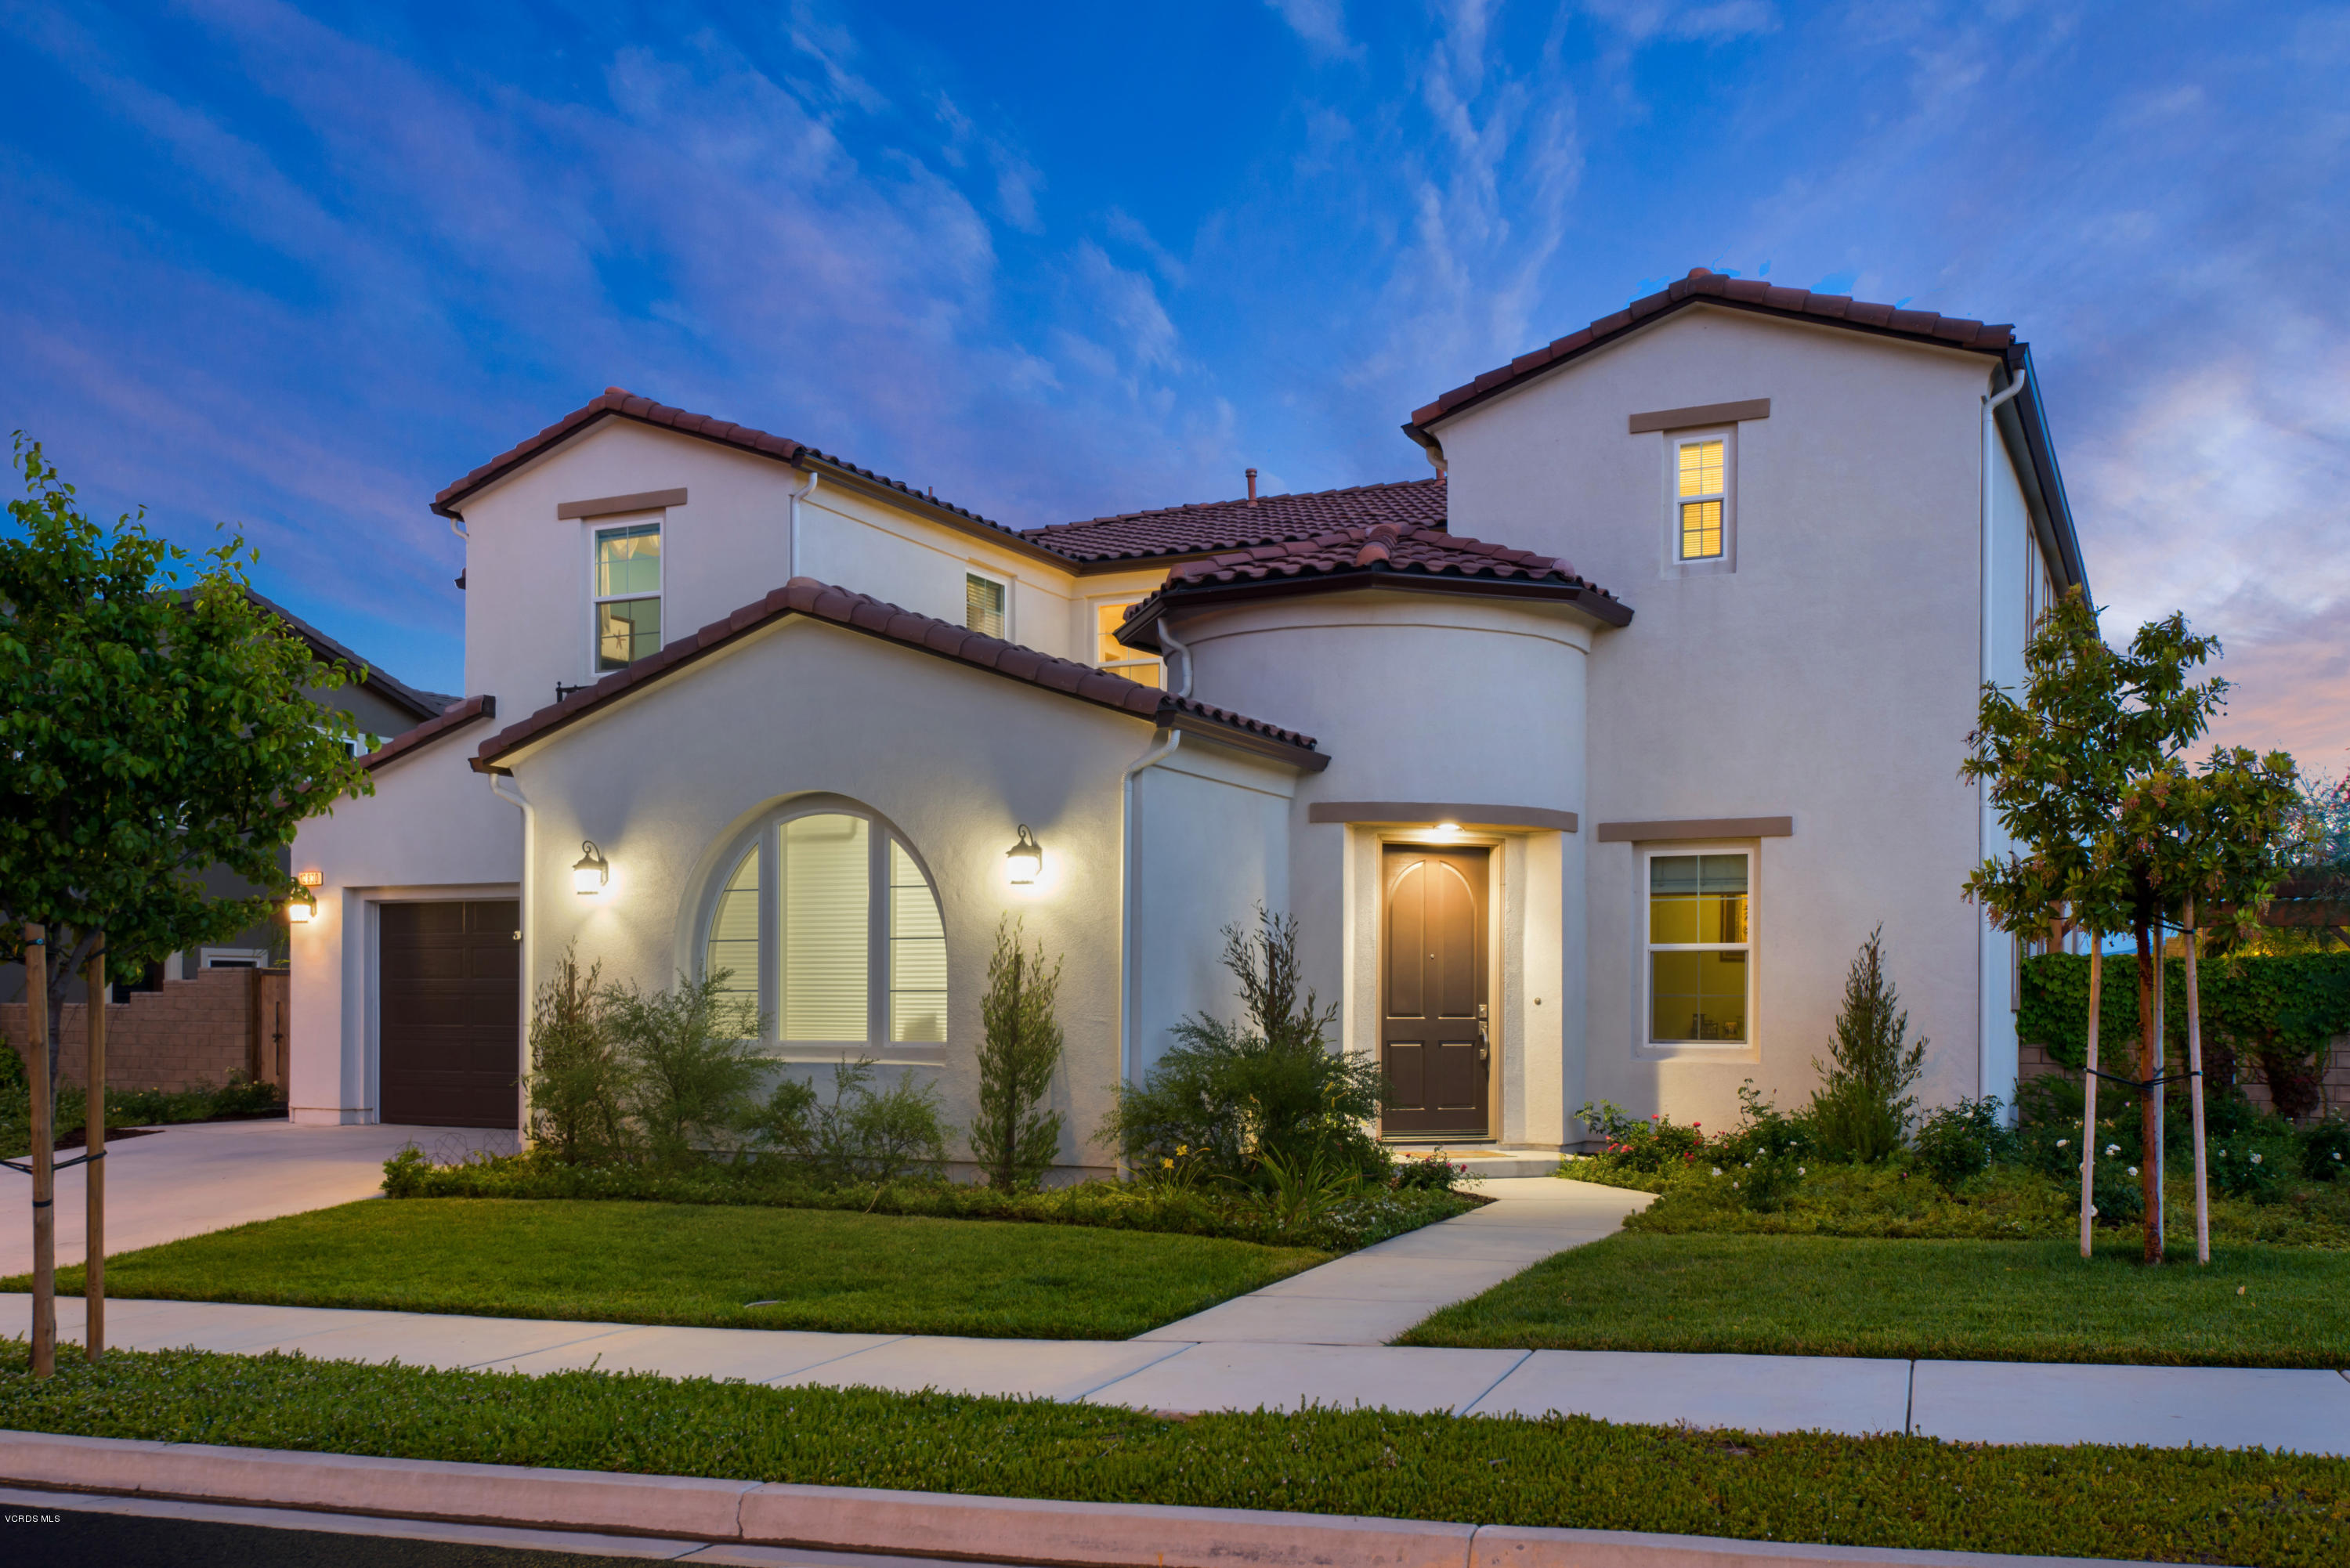 Remarkable Cathy Duncan Kari Mangola Specialize In Moorpark Ca Homes Home Interior And Landscaping Transignezvosmurscom